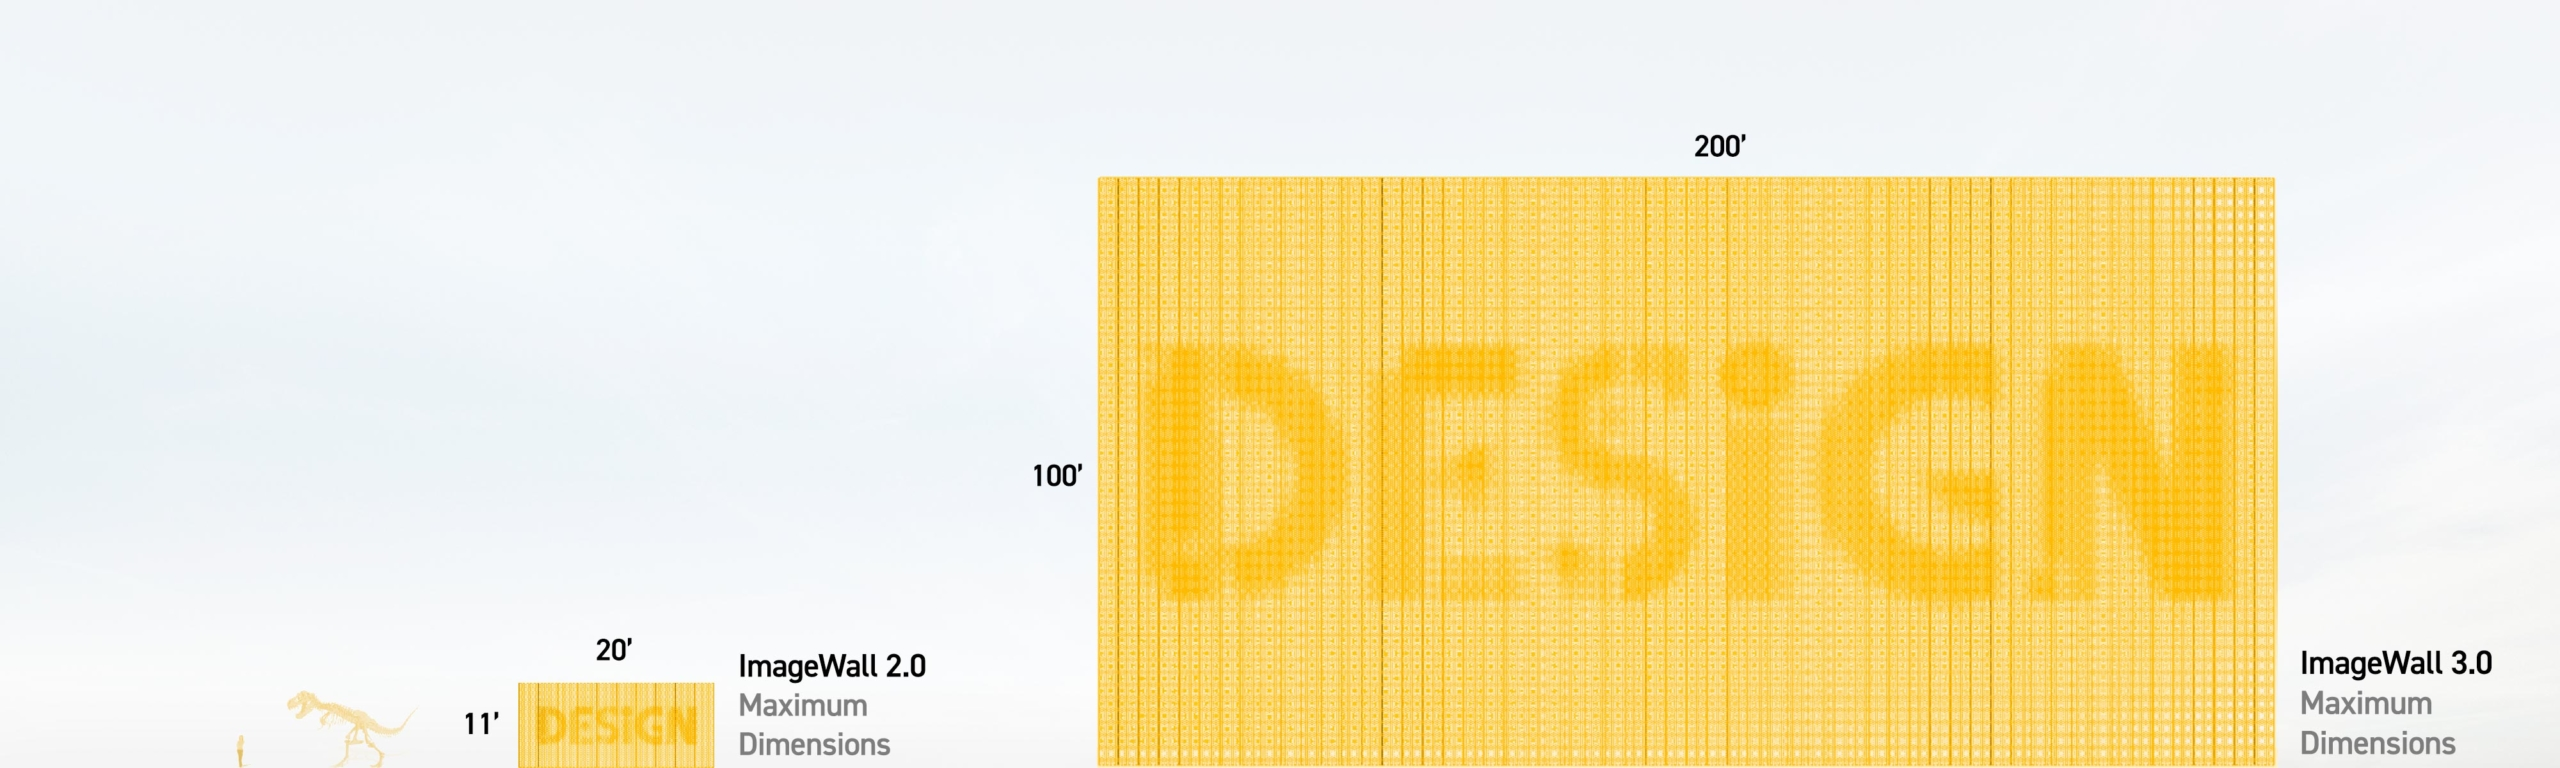 Designers using ImageWall can now preview at scales up to 200' long.